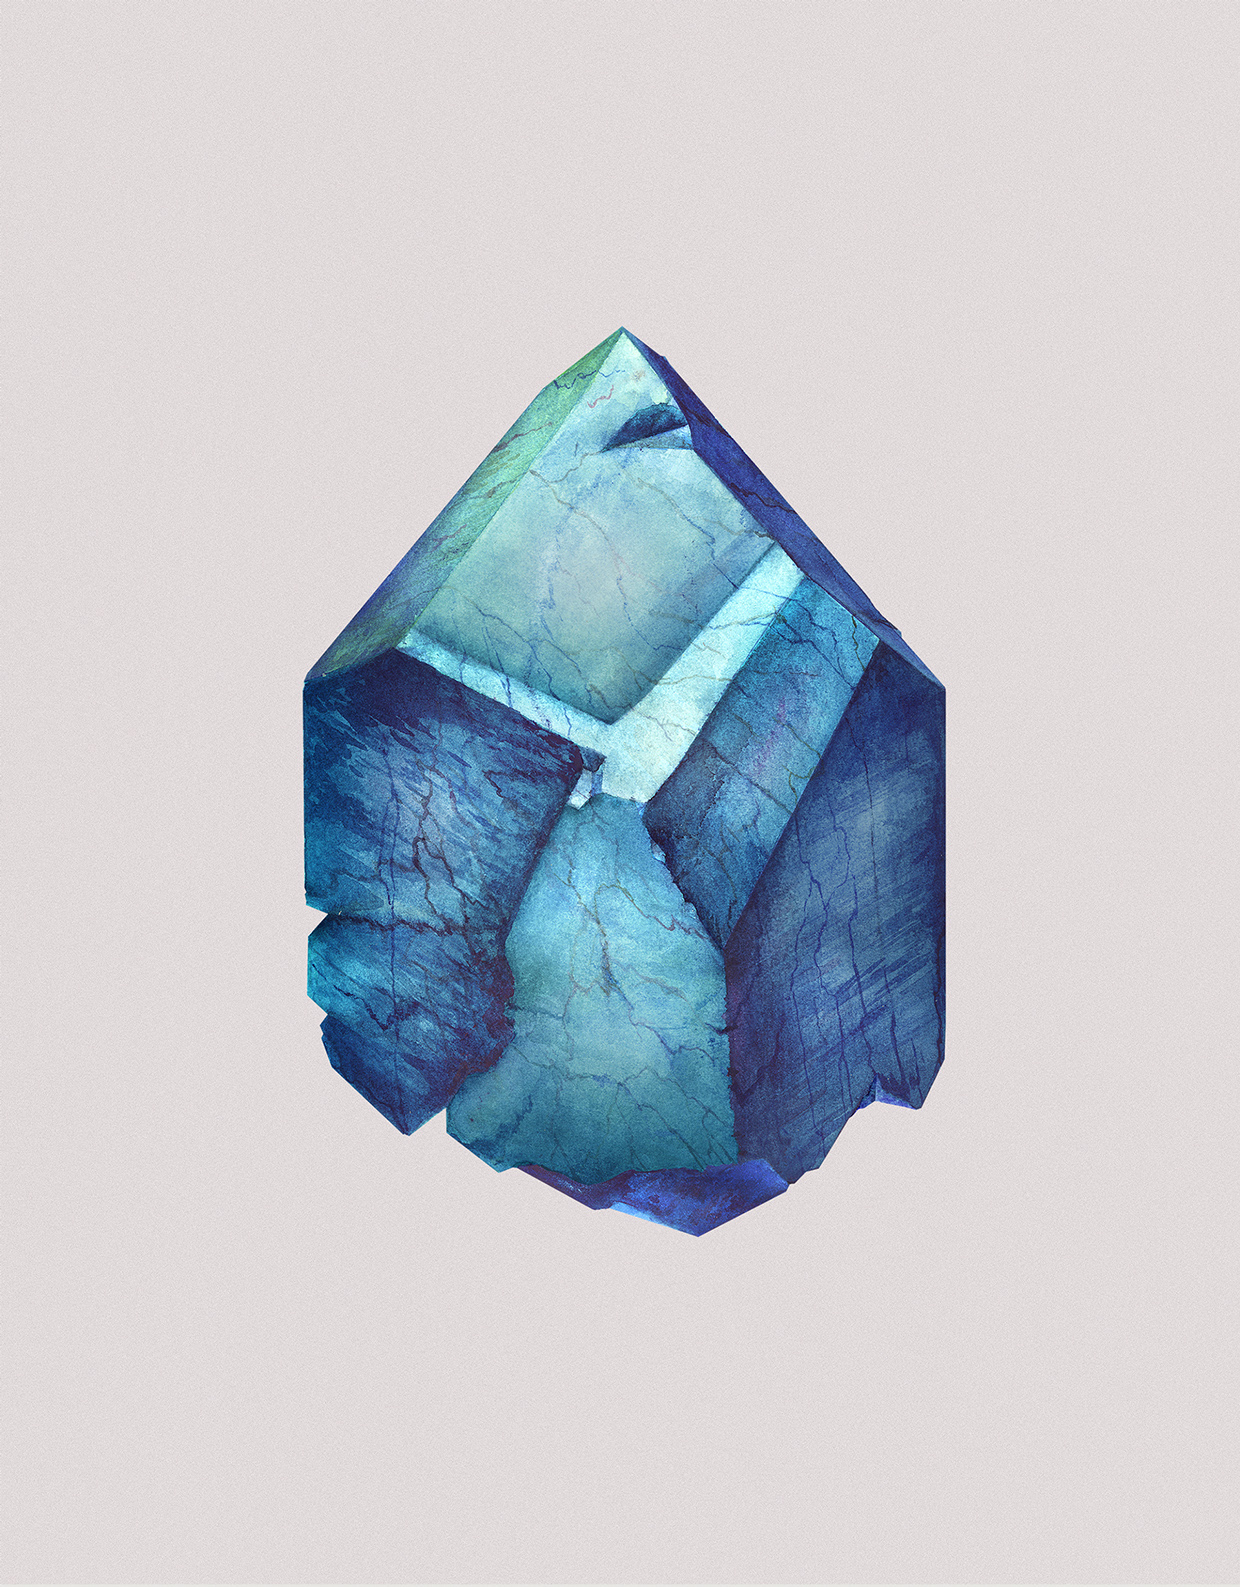 Watercolor Paintings of Crystals by Karina Eibatova (6)